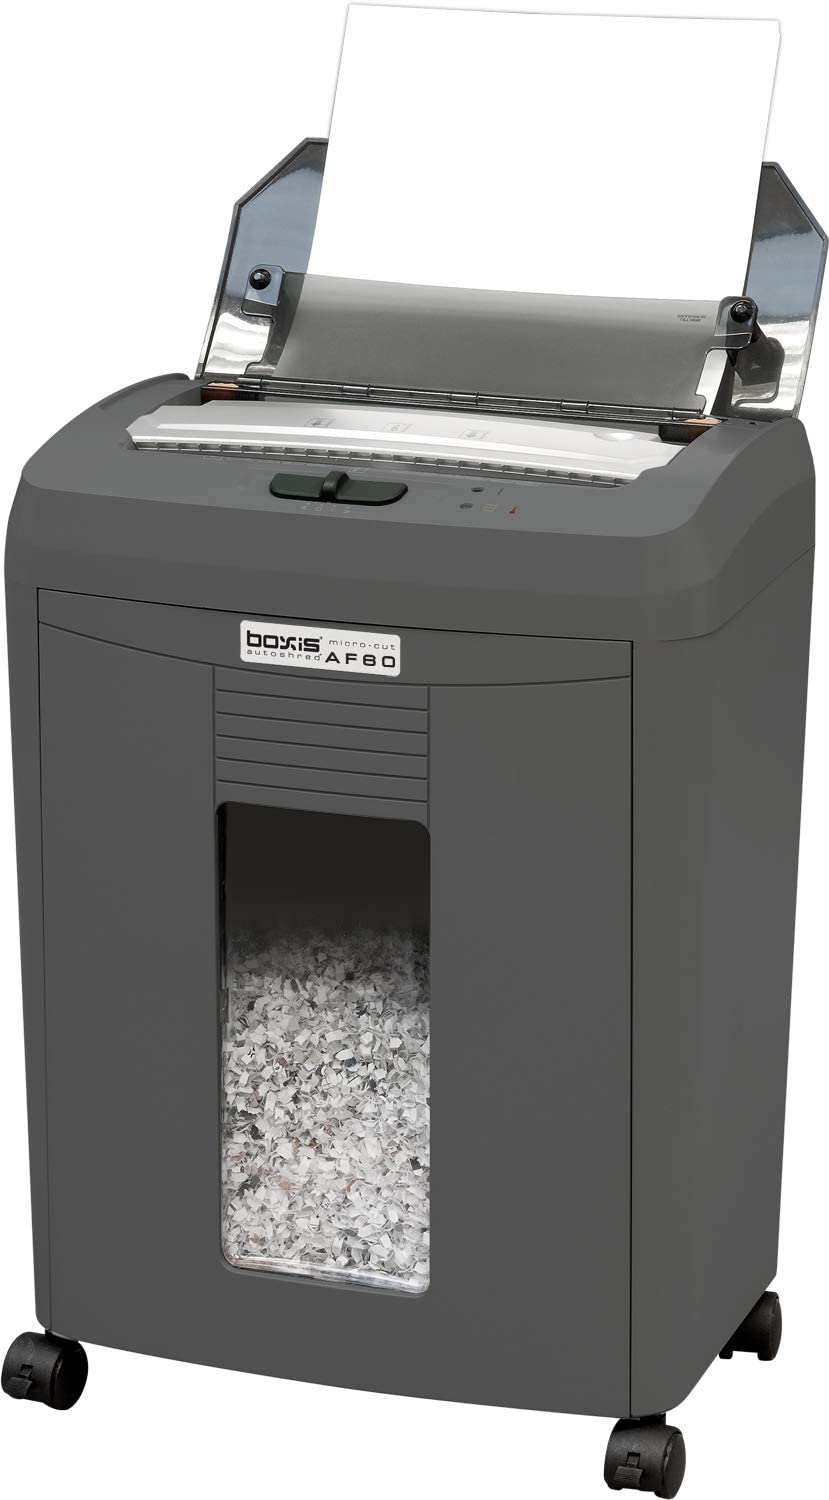 Boxis AutoShred 90-Sheet Auto Feed Microcut Paper Shredder